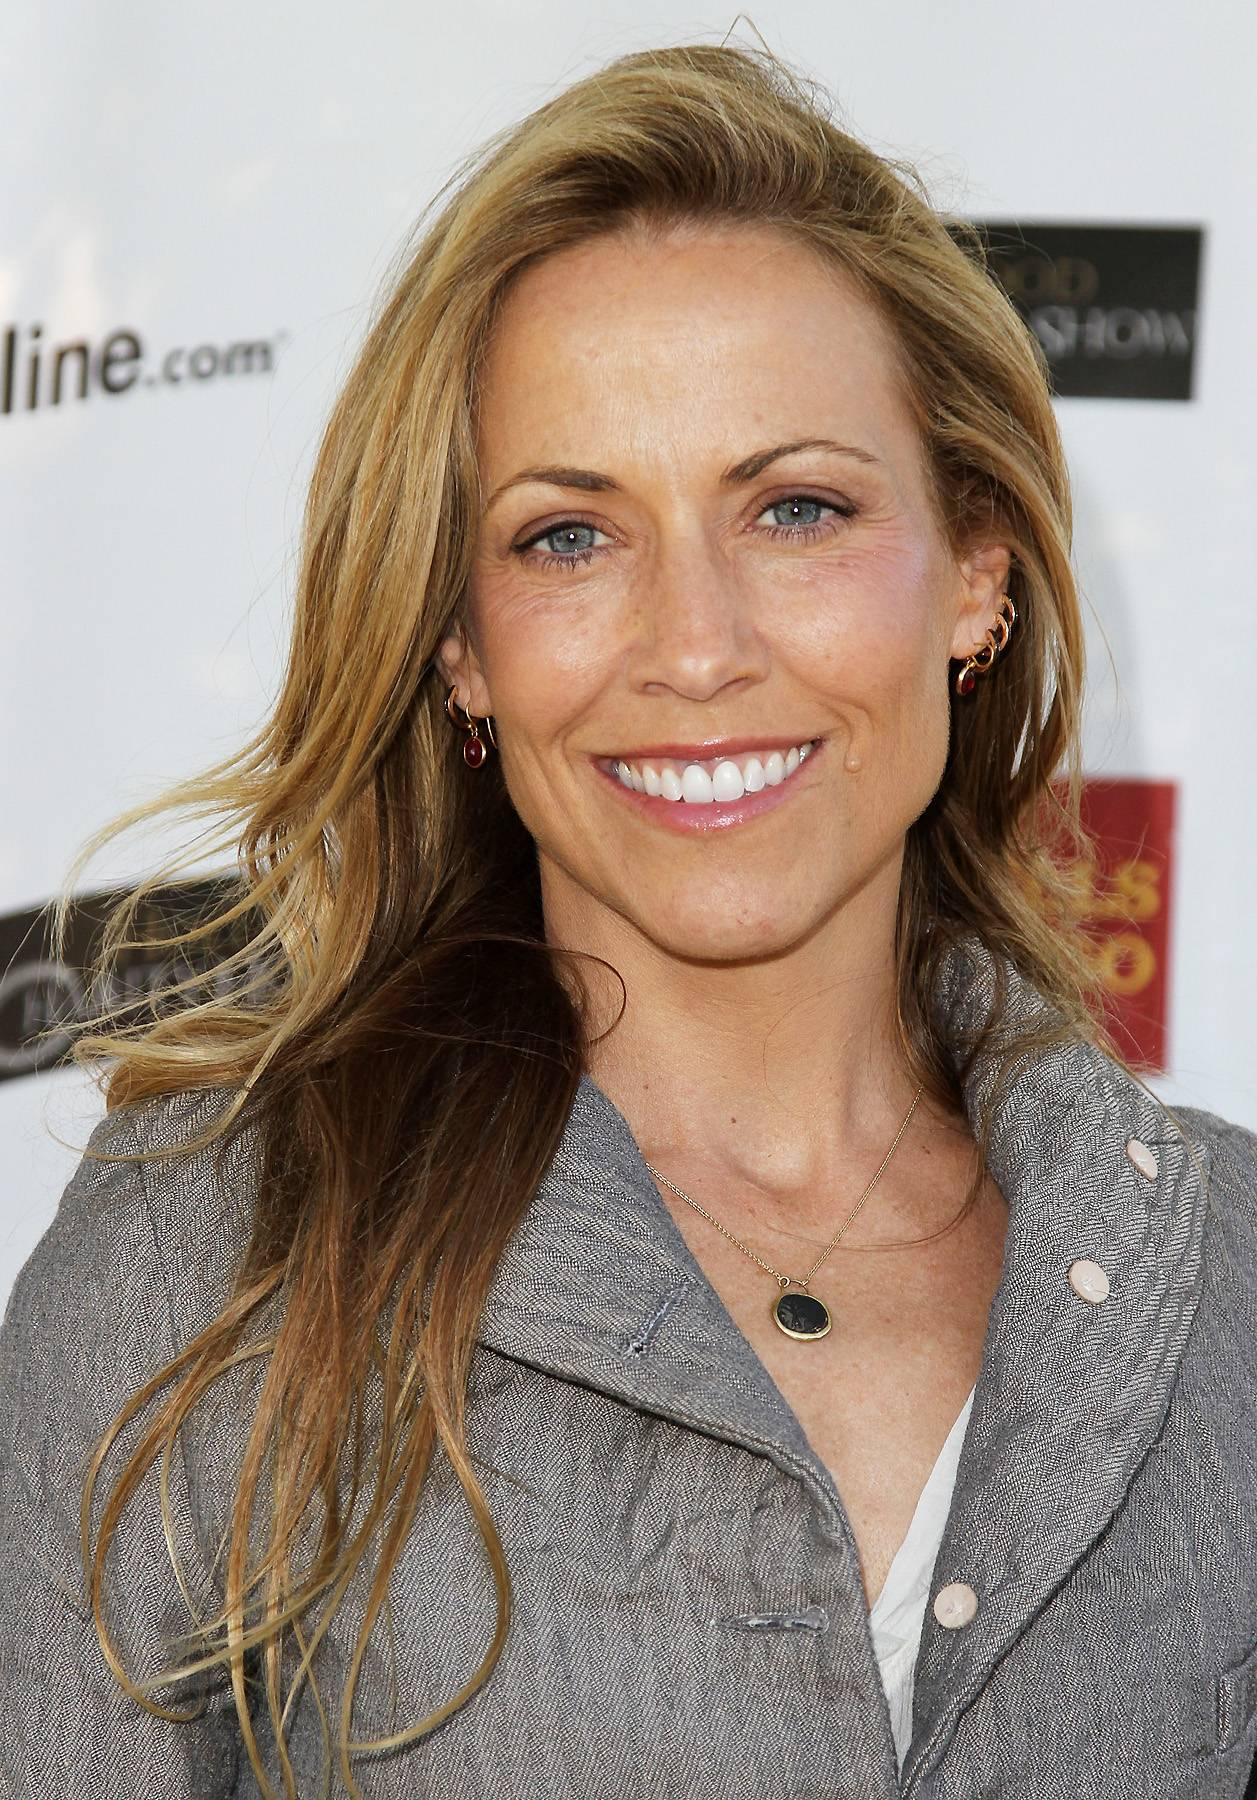 040612-shows-lets-stay-together-cougars-sheryl-crow.jpg